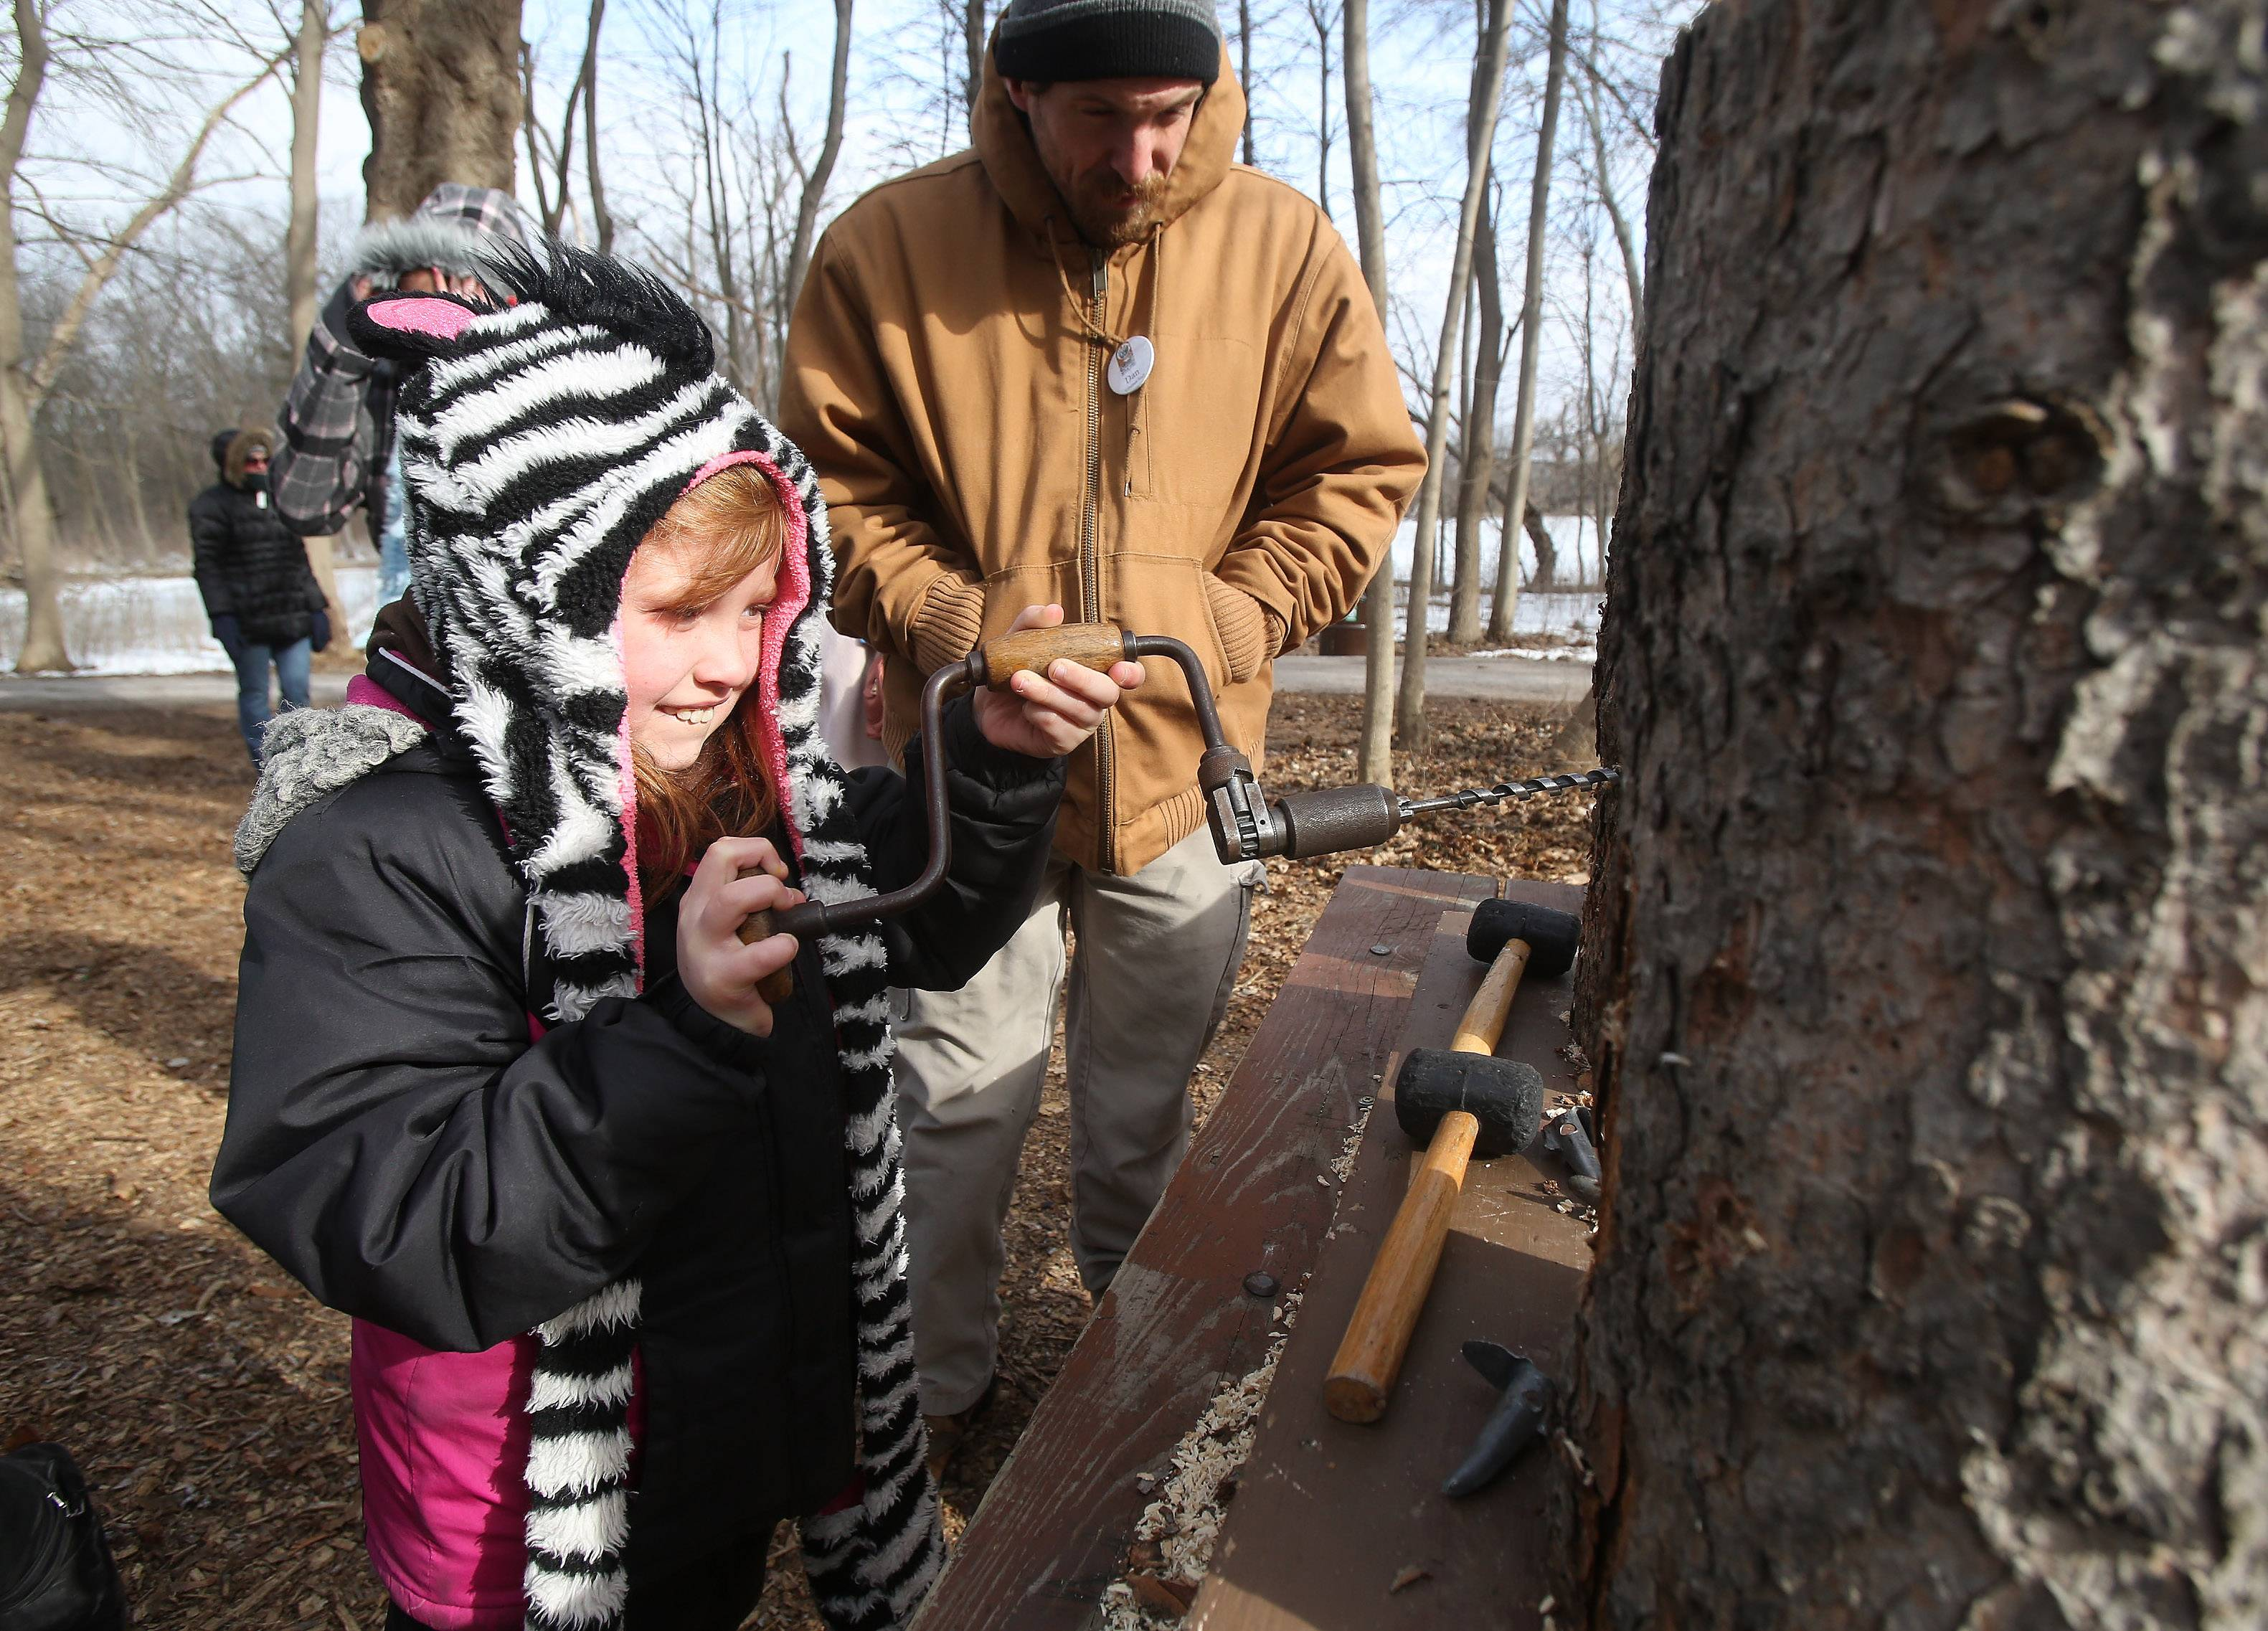 Colleen Wallace, 10, of Hoffman Estates drills a hole in stump to put in a maple tap Sunday during the 30th annual Sugar Bush Fair at the Spring Valley Nature Center in Schaumburg. The fair featured a pancake breakfast, maple syrup production, pioneer sugar camps, a puppet show and hayrides.